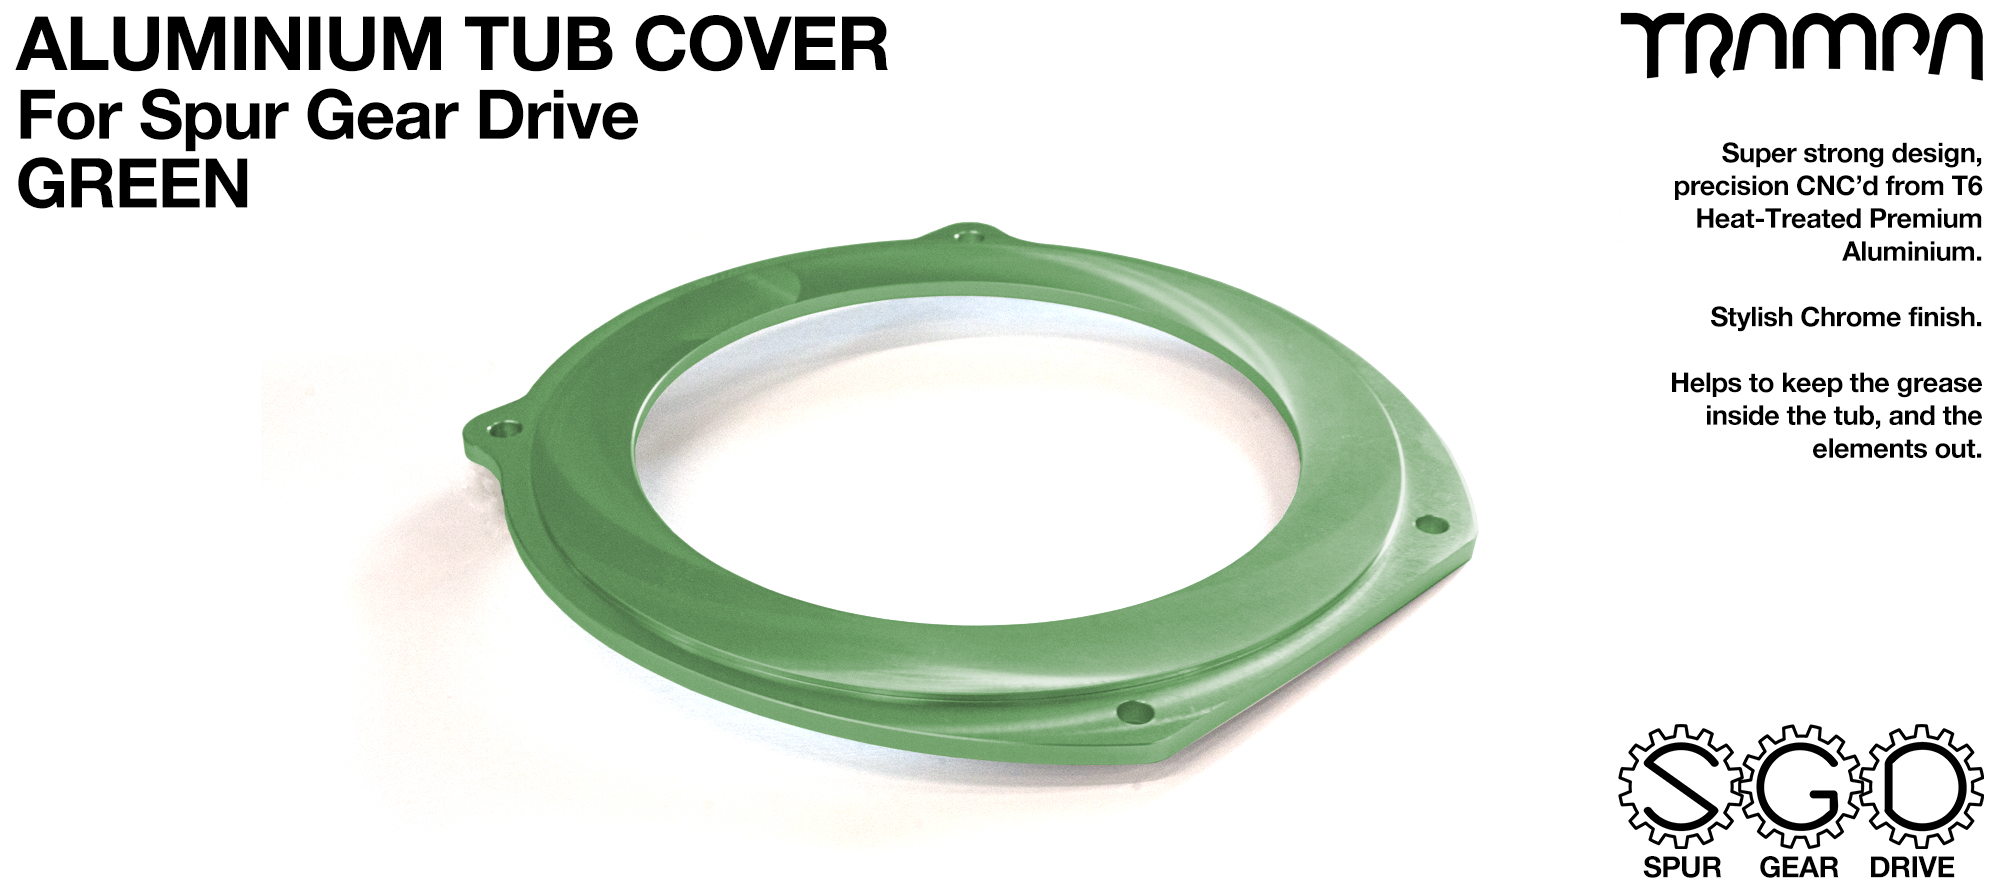 Spur Gear Drive Tub Cover - GREEN